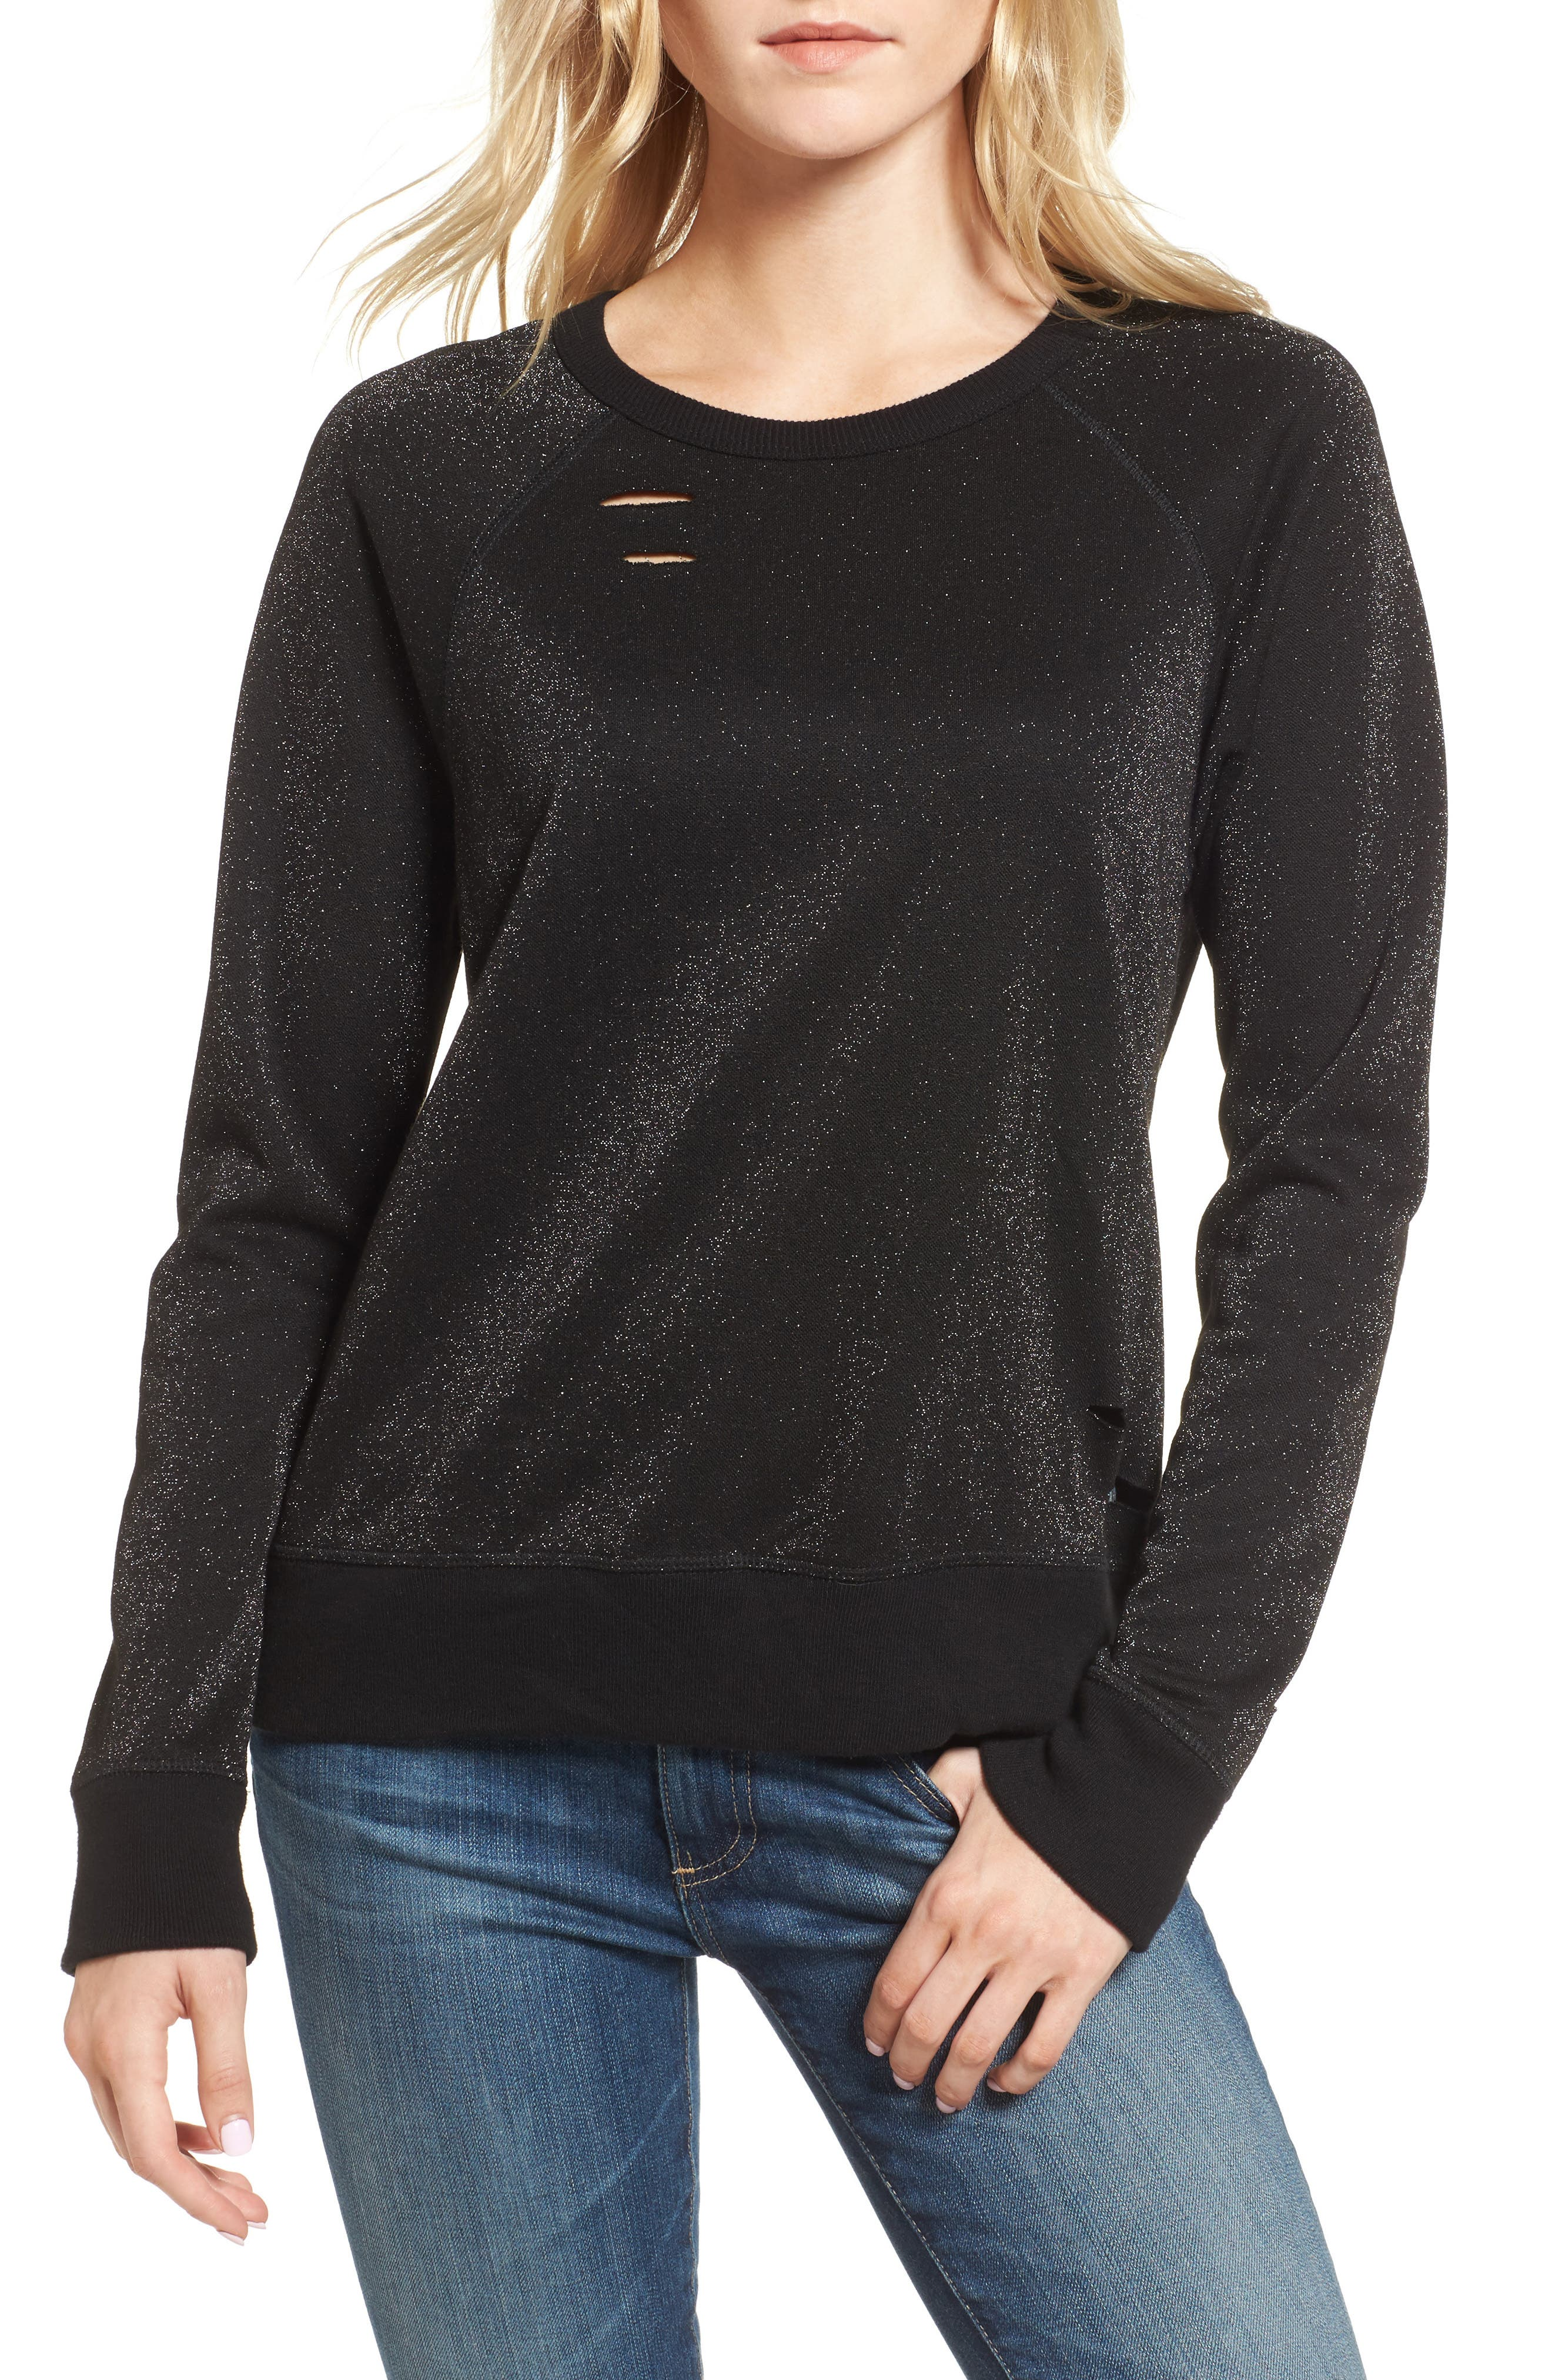 Fuller Sweatshirt,                         Main,                         color, 001